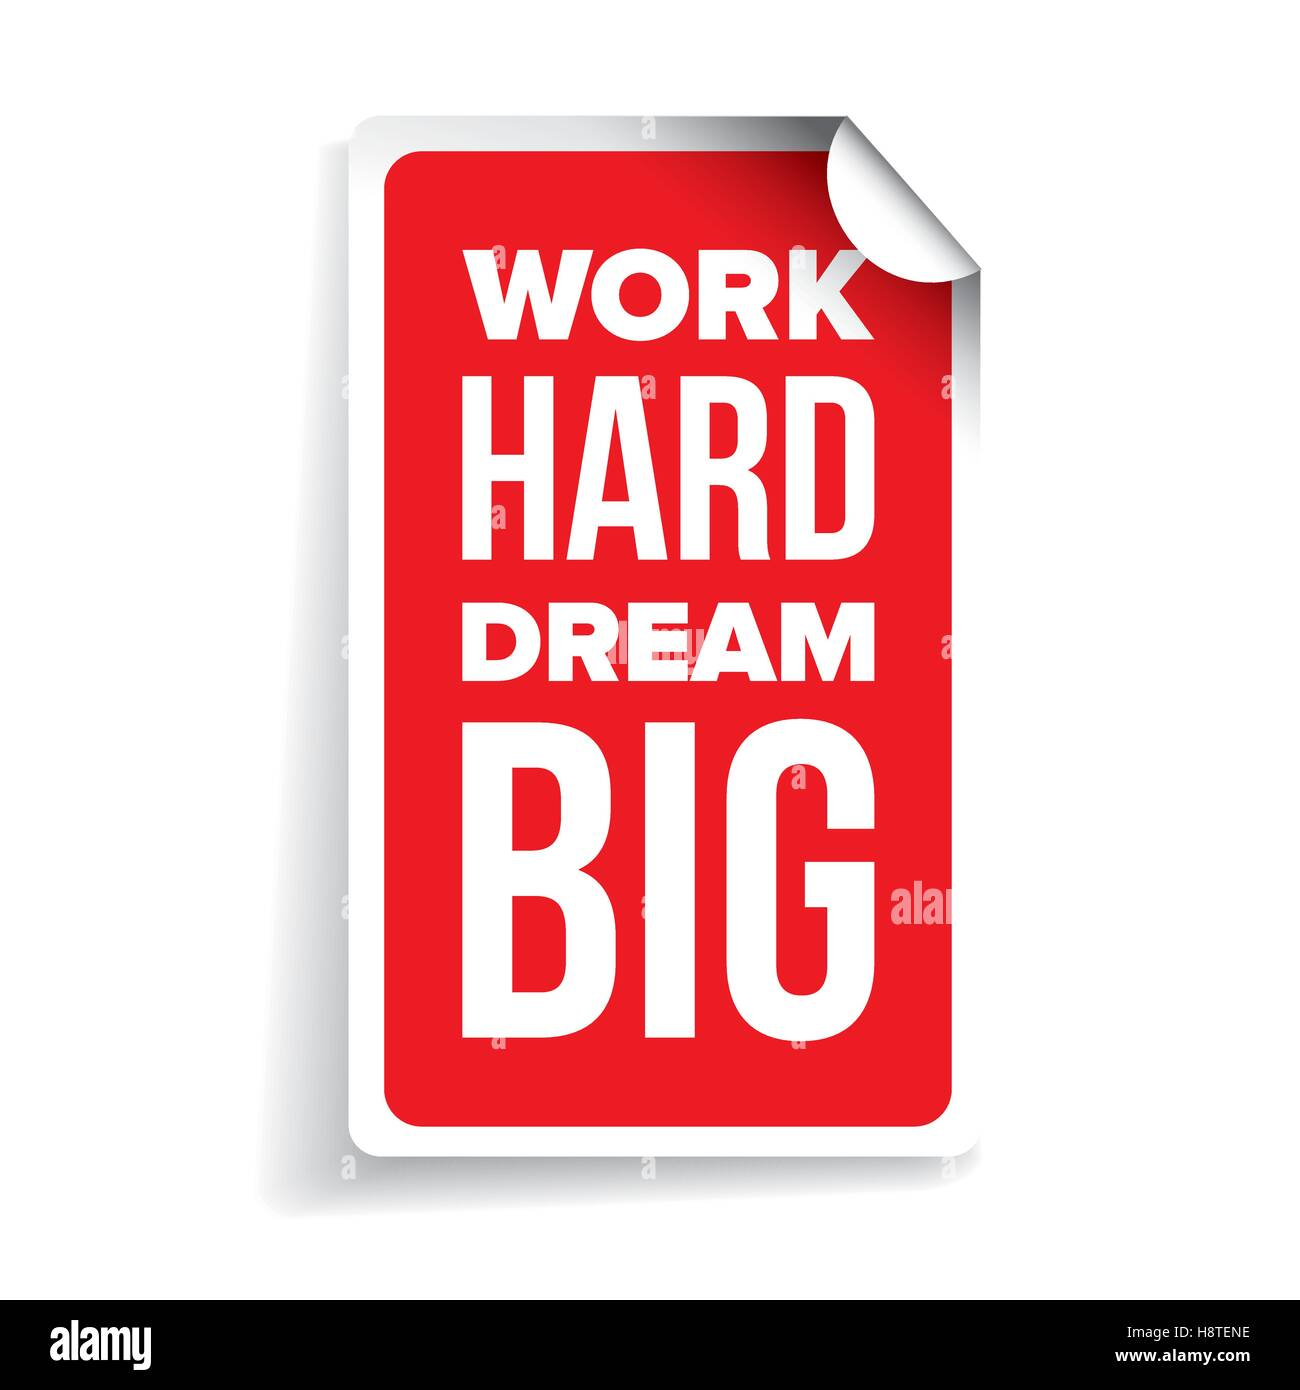 Work Hard Dream Big Inspirational Motivational Quote Stock Vector